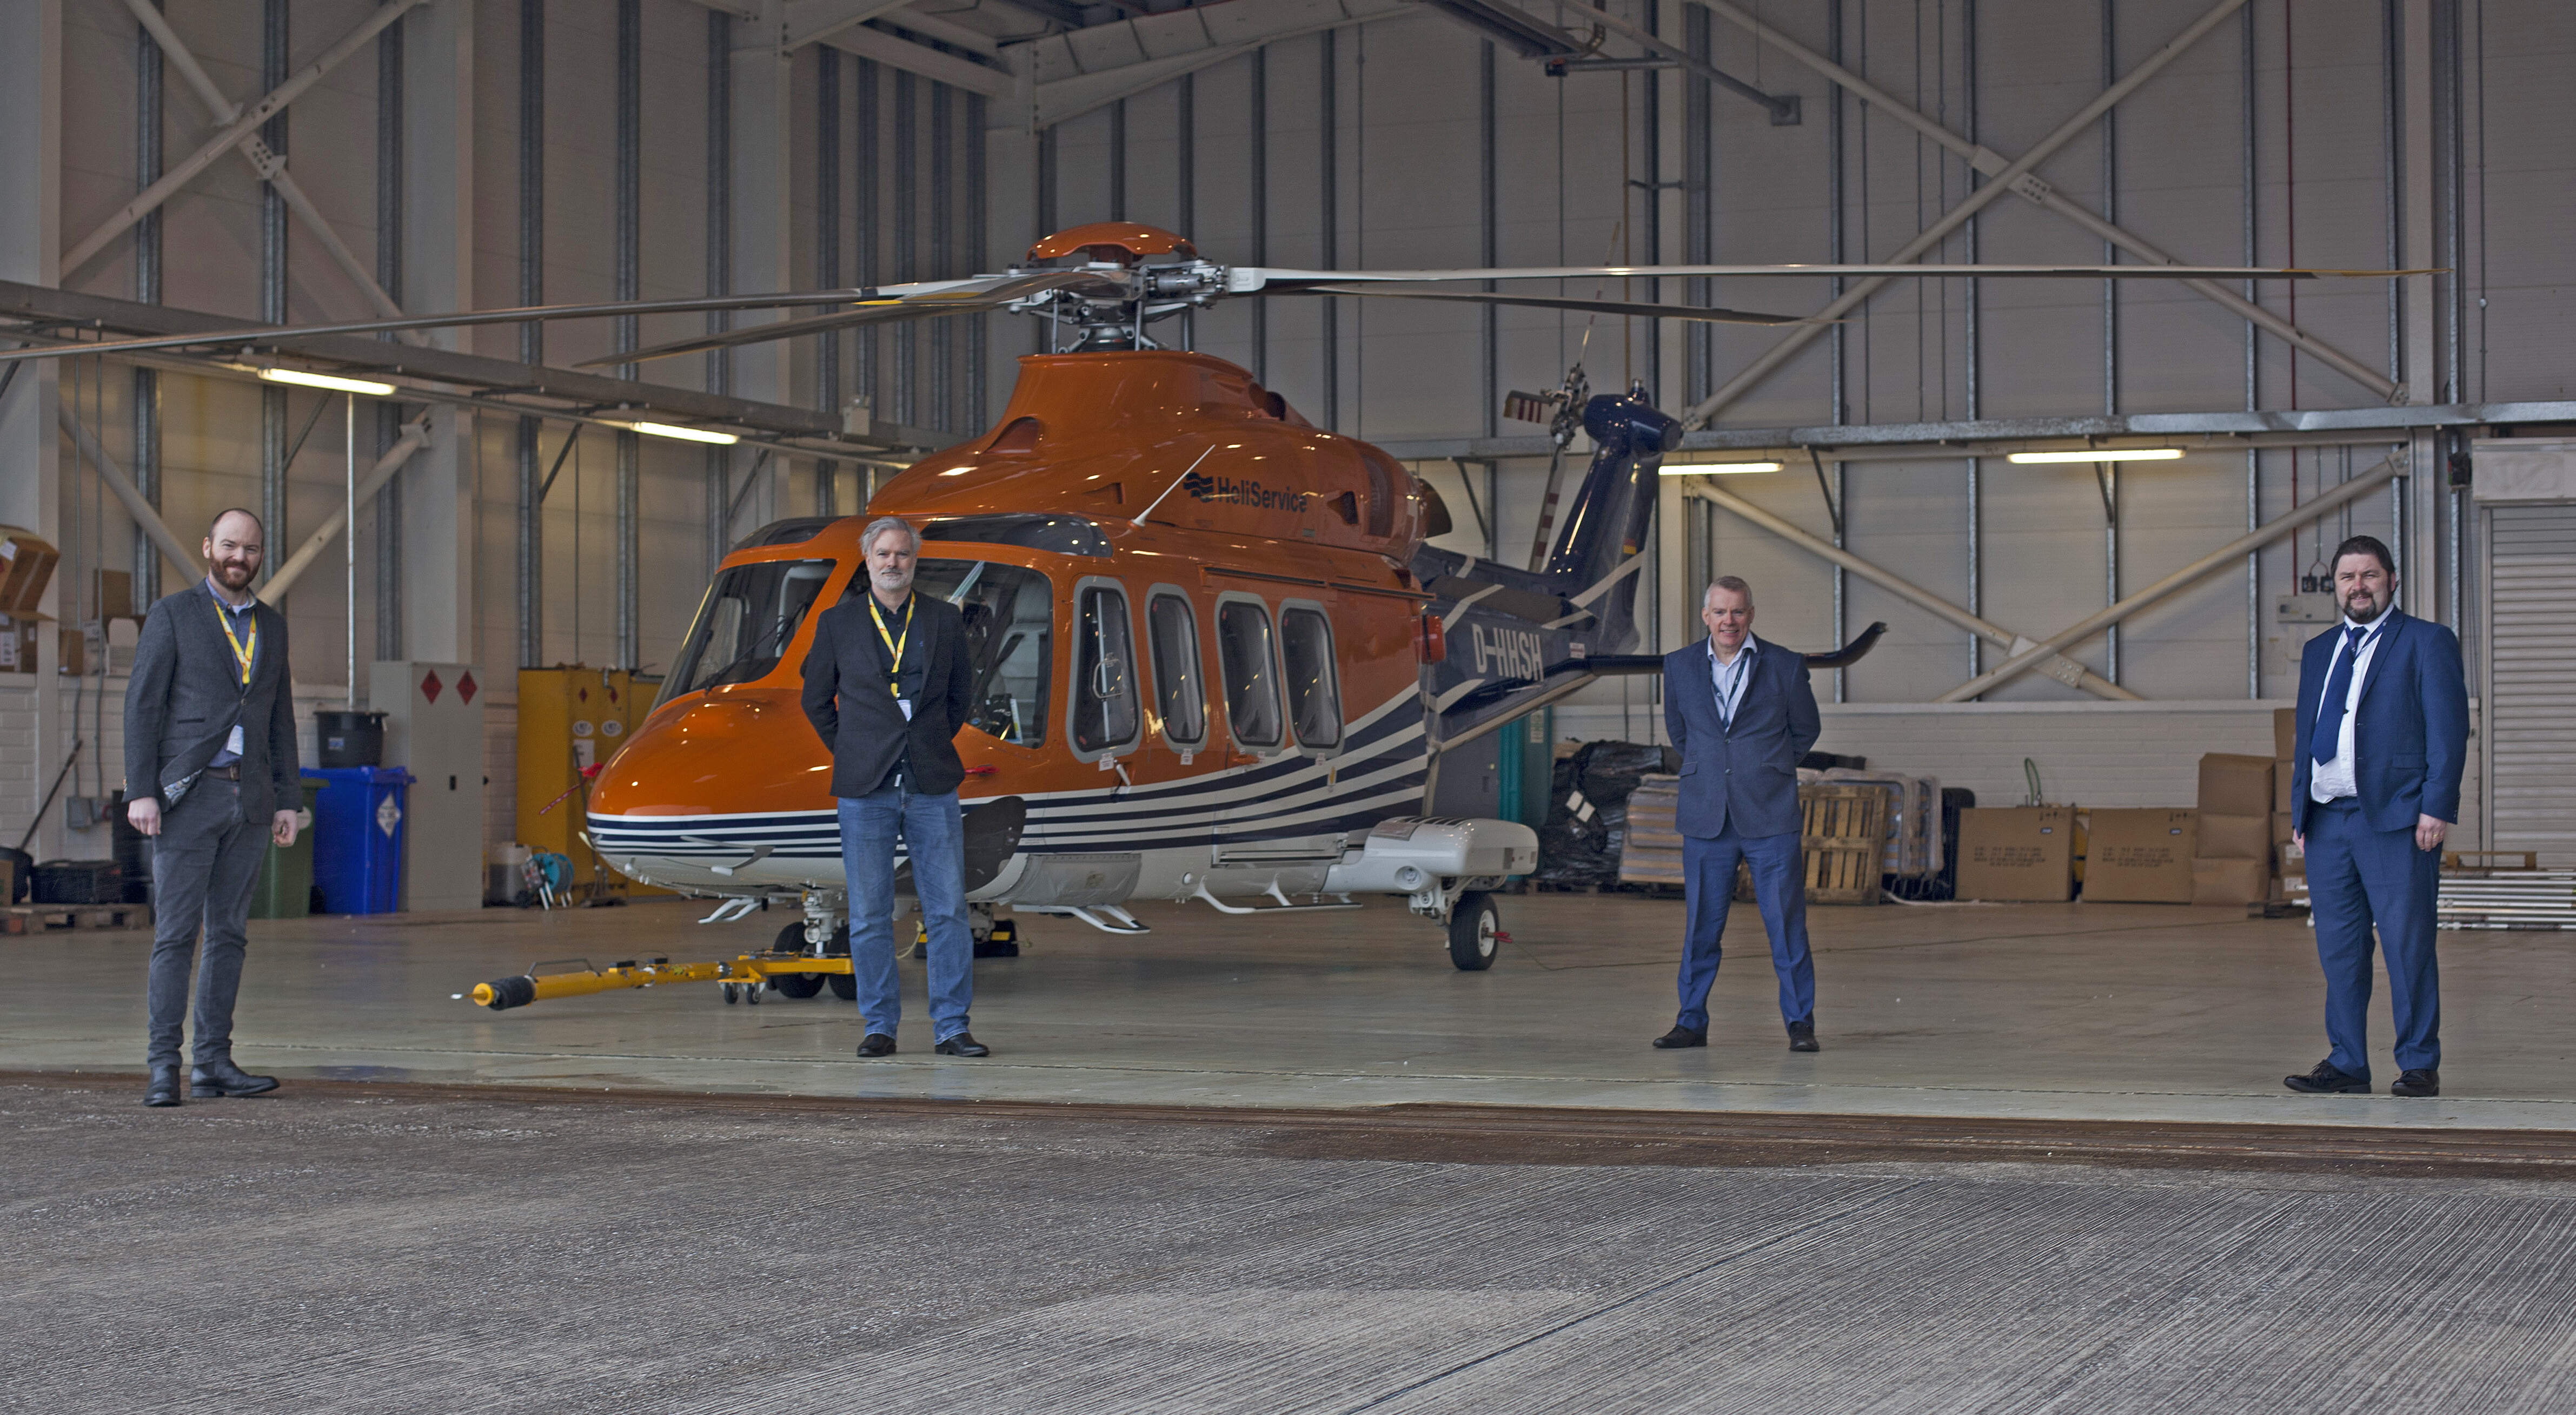 Weston Aviation welcomes NHV Helicopters	to Cork Airport/EICK